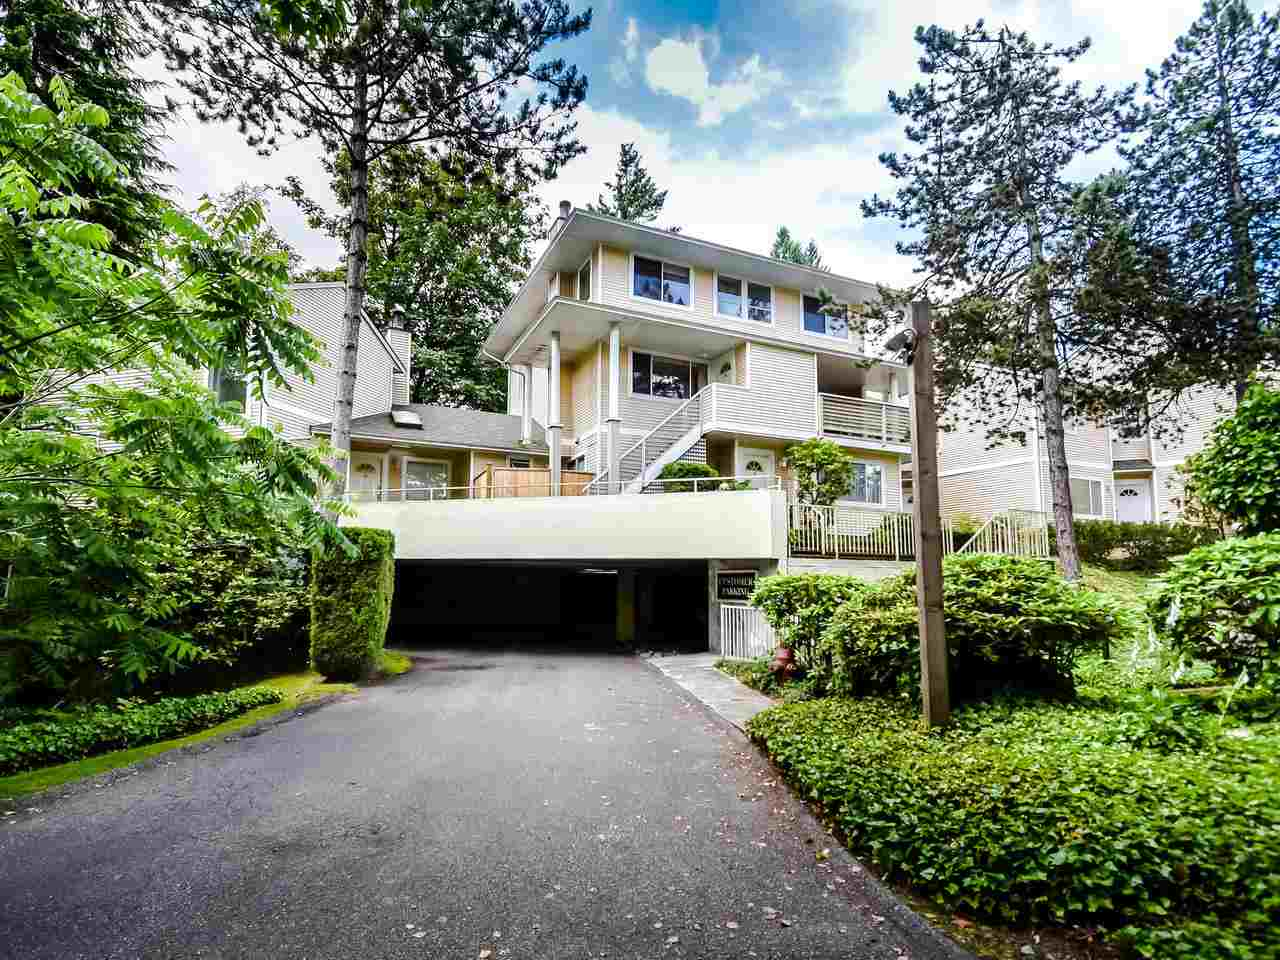 10 2223 ST JOHNS STREET - Port Moody Centre Townhouse for sale, 3 Bedrooms (R2486429) - #1